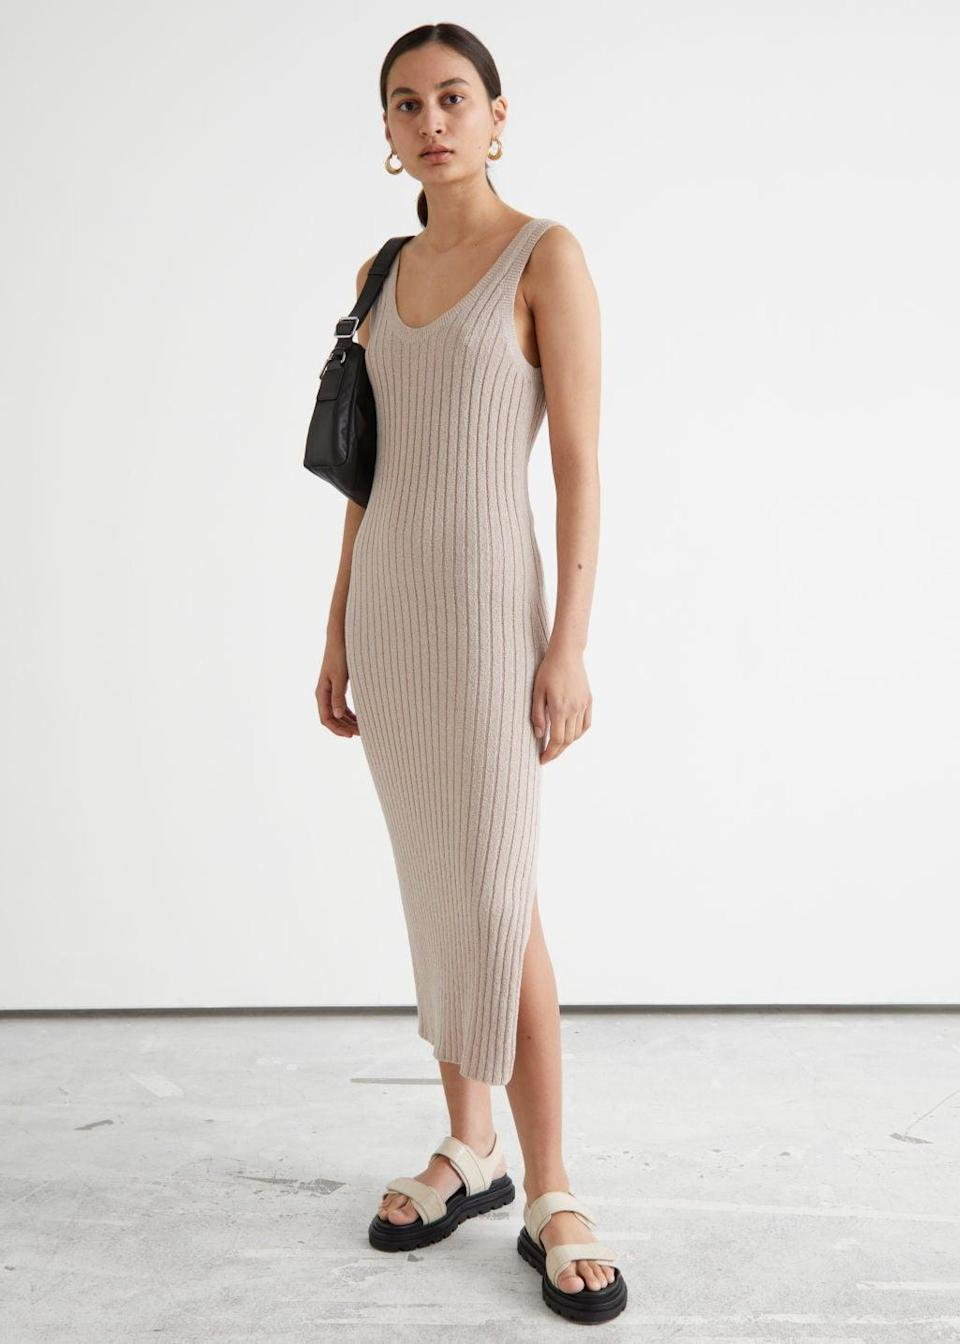 <p>This sleeveless <span>&amp; Other Stories Rib Knit Midi Dress</span> ($89) is the answer to your everyday fashion dilemma when you're just stuck on what to wear to the beach or to hang out with friends. With its ribbed finish and side slit, it looks chic and flattering.</p>